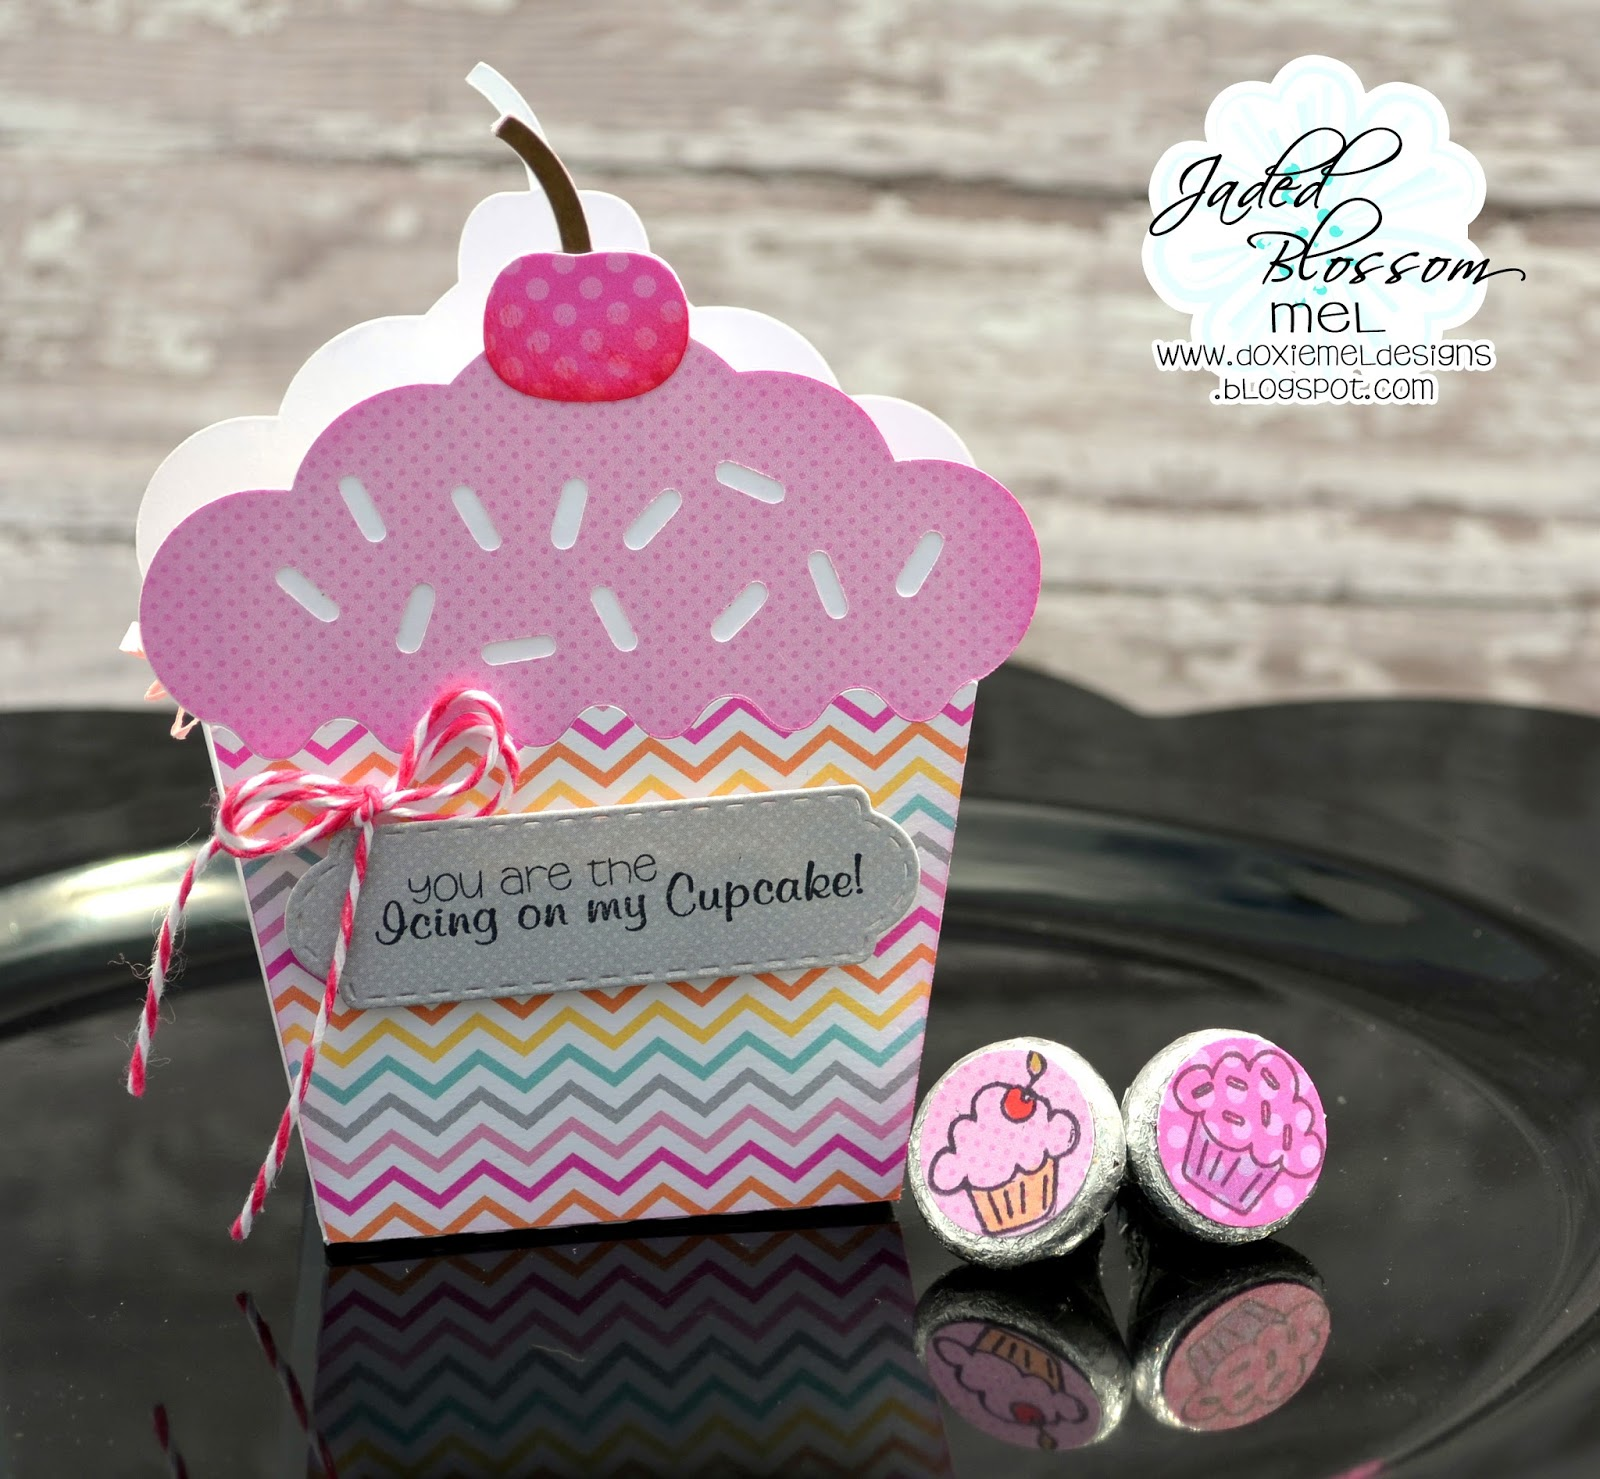 Doxie Mel Designs: Jaded Blossom May Challenge :: Cupcake Treat Holder